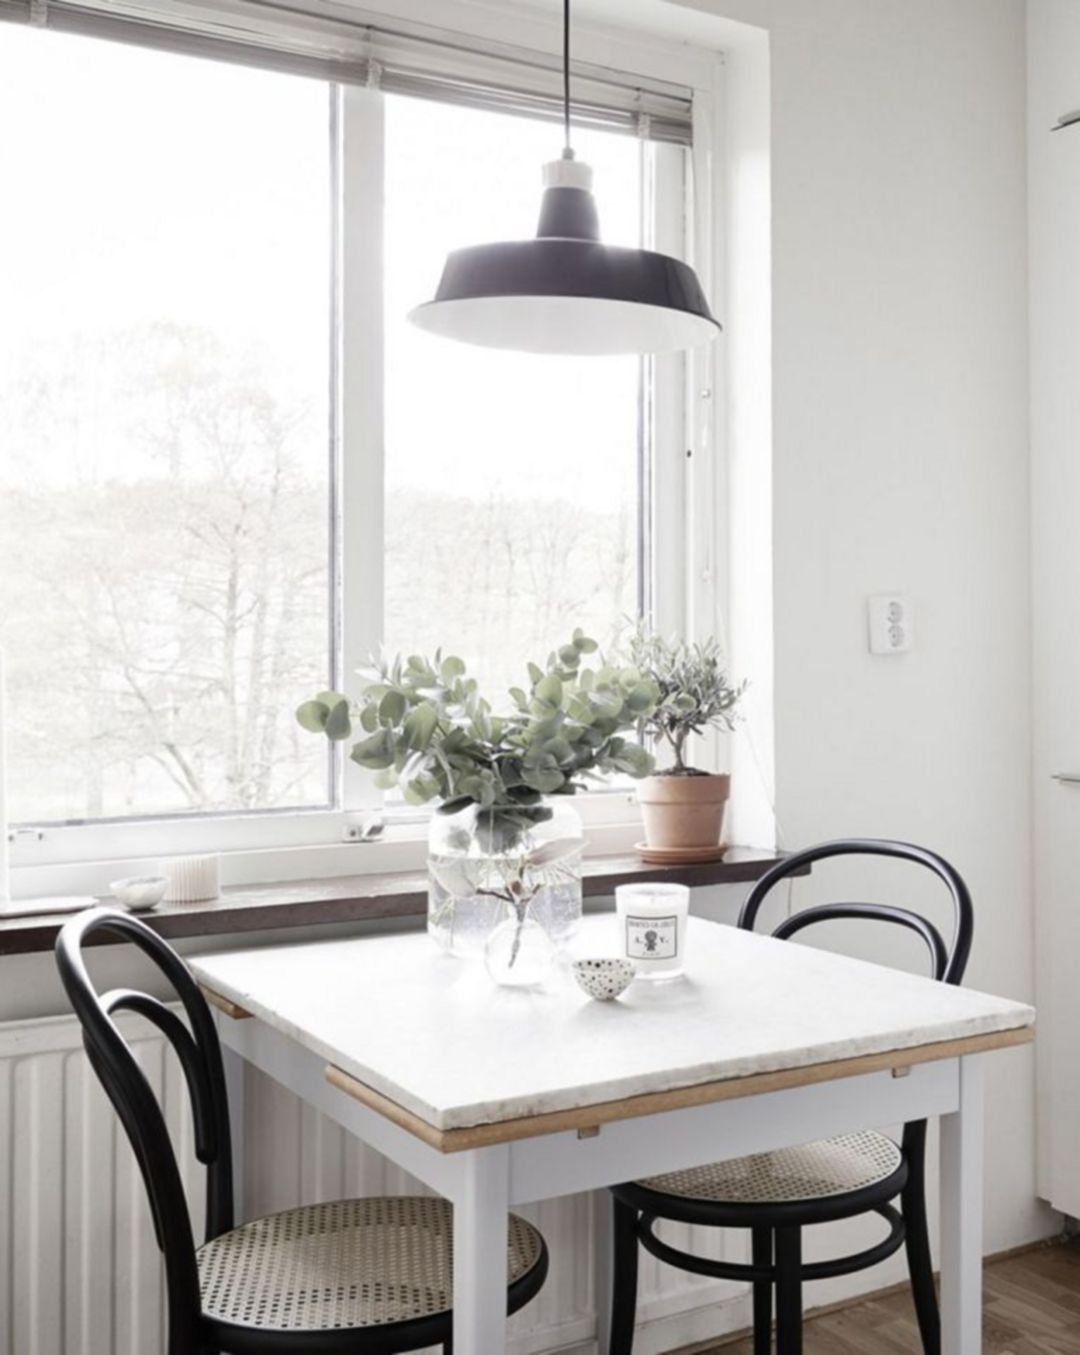 10 Fabulous Tiny Dining Room Design Ideas For Romantic Families Design Decorating Dining Room Small Tiny Dining Rooms Small Kitchen Tables